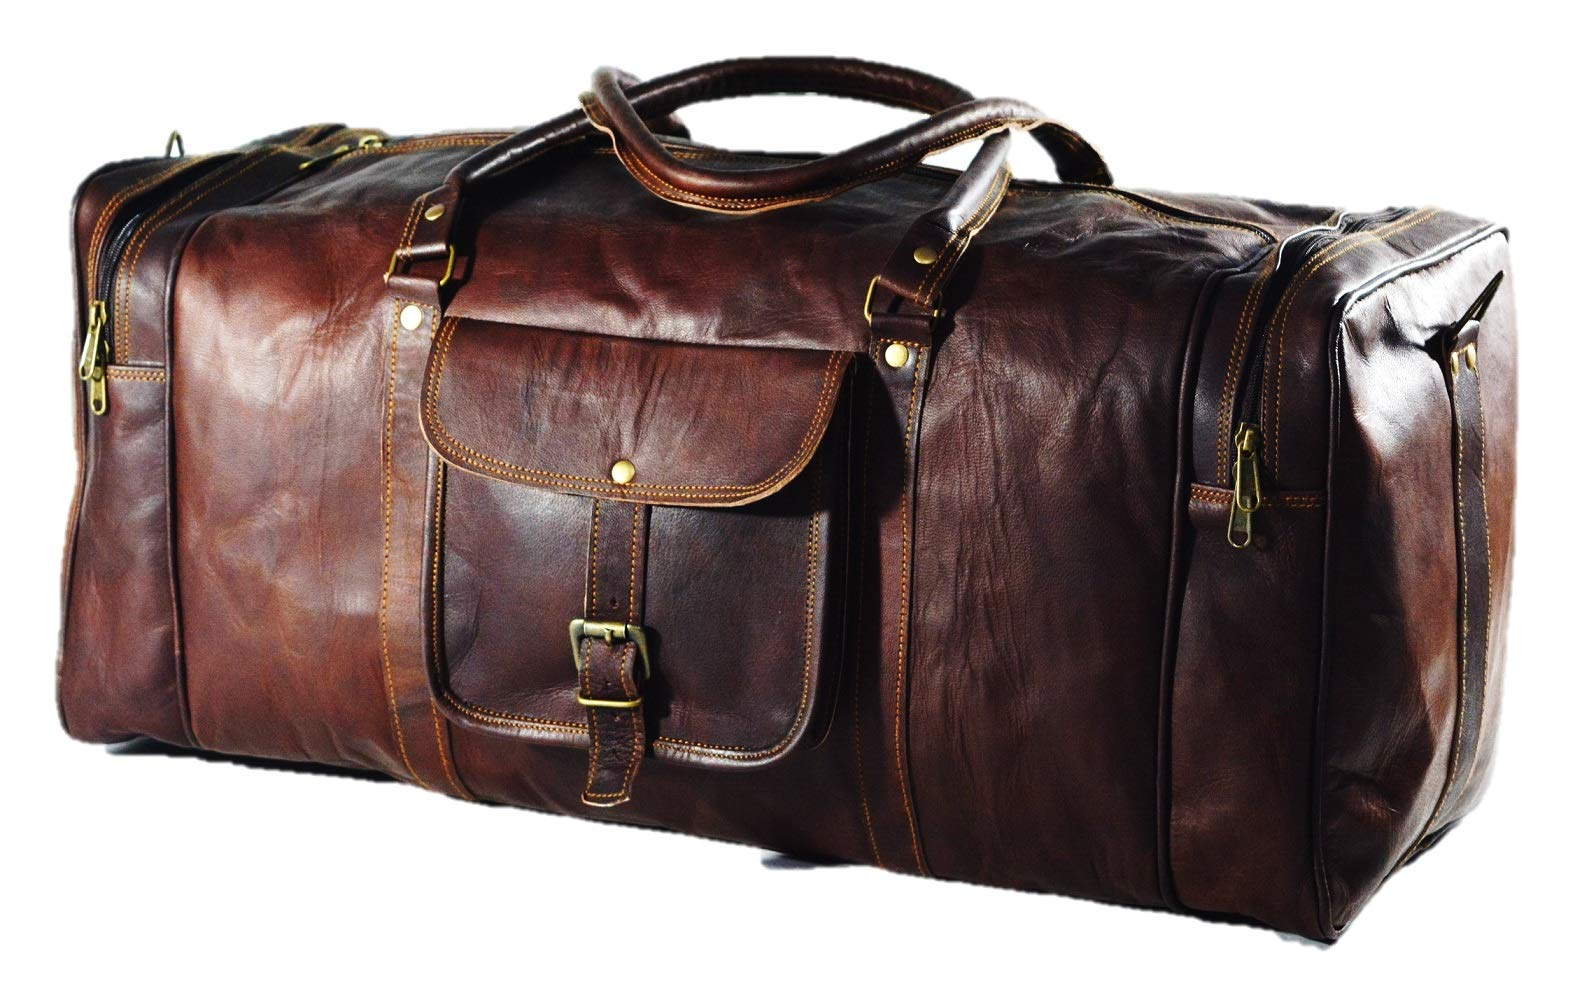 Urban Dezire 24 Inch Vintage Leather Duffel Travel Gym Sports Overnight Weekend Bag by URBAN DEZIRE